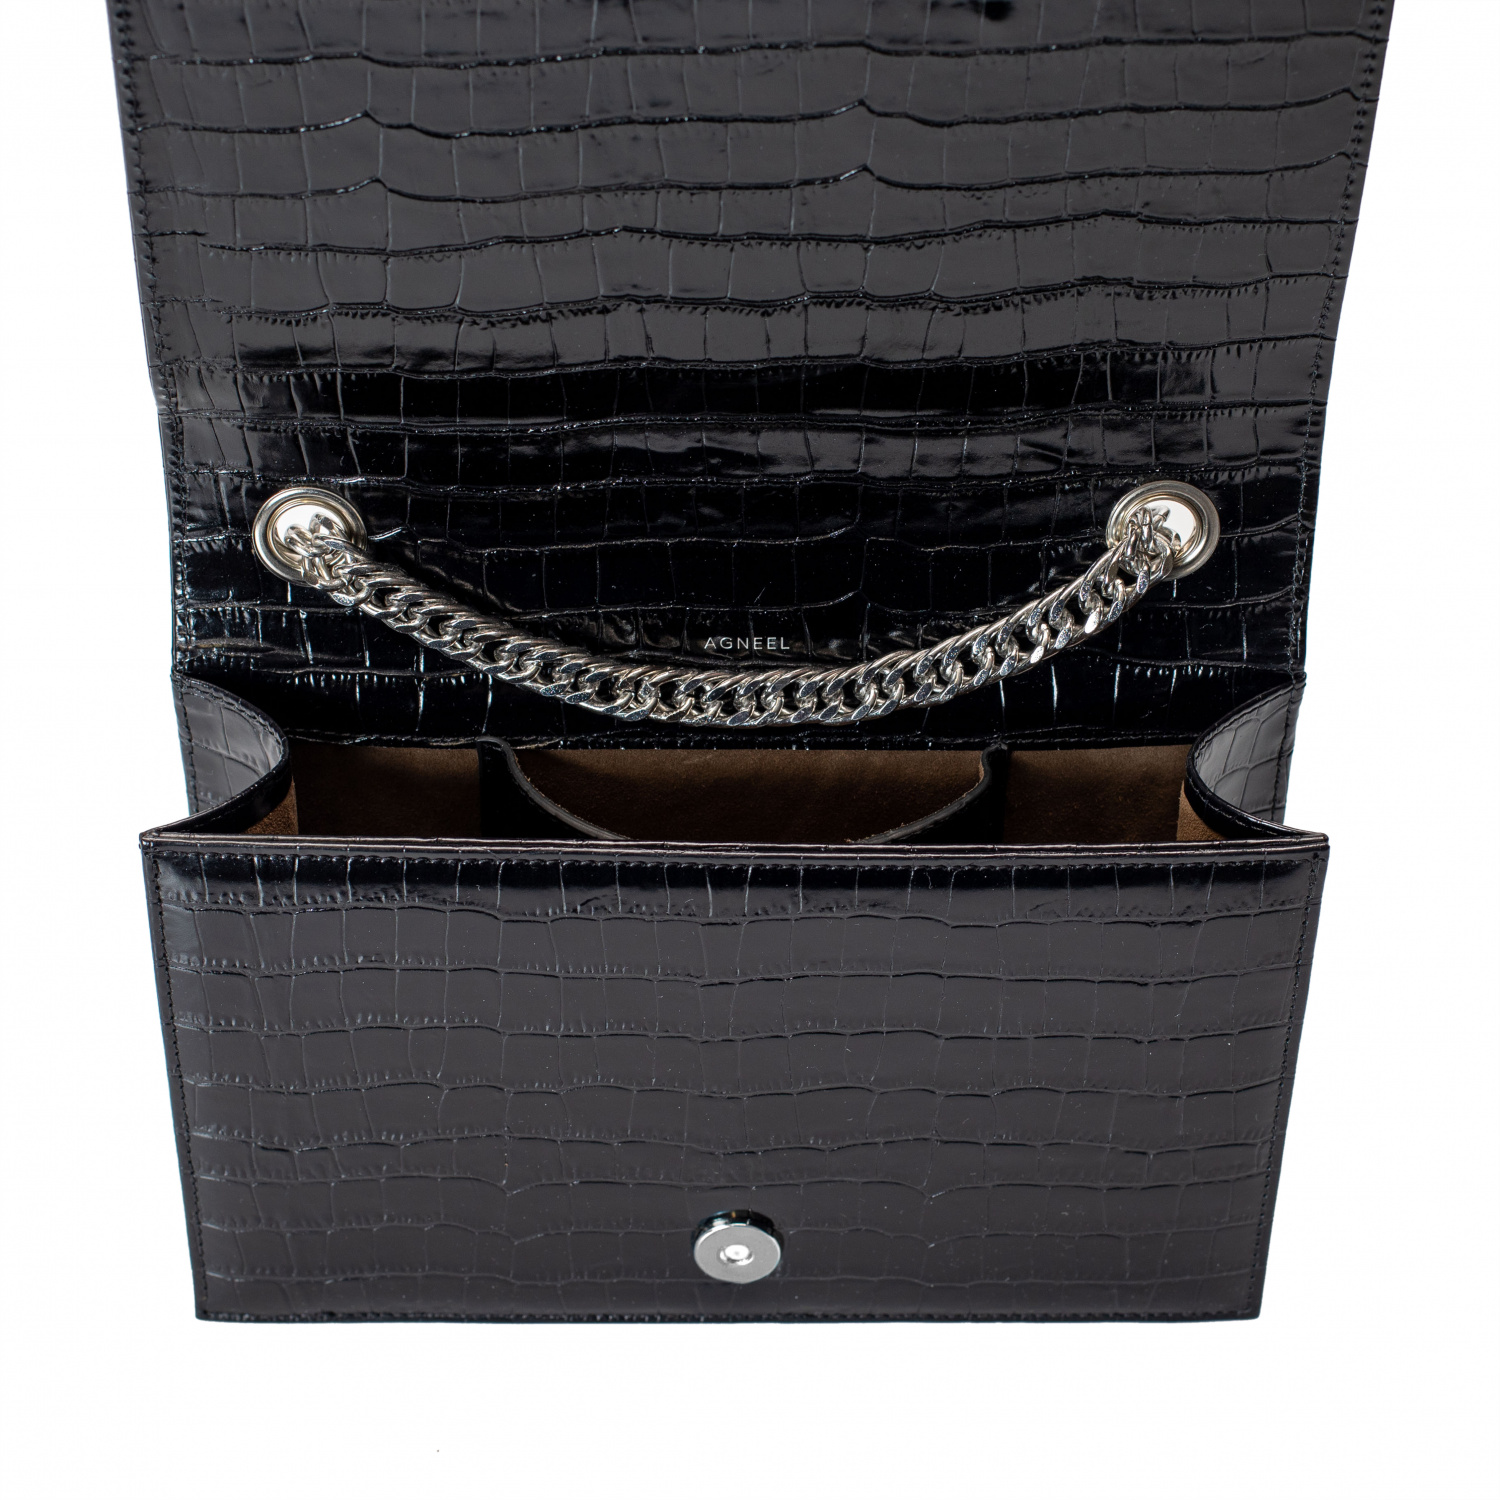 EVA SMALL SHOULDER BAG IN CALFSKIN WITH CROCO DESIGN